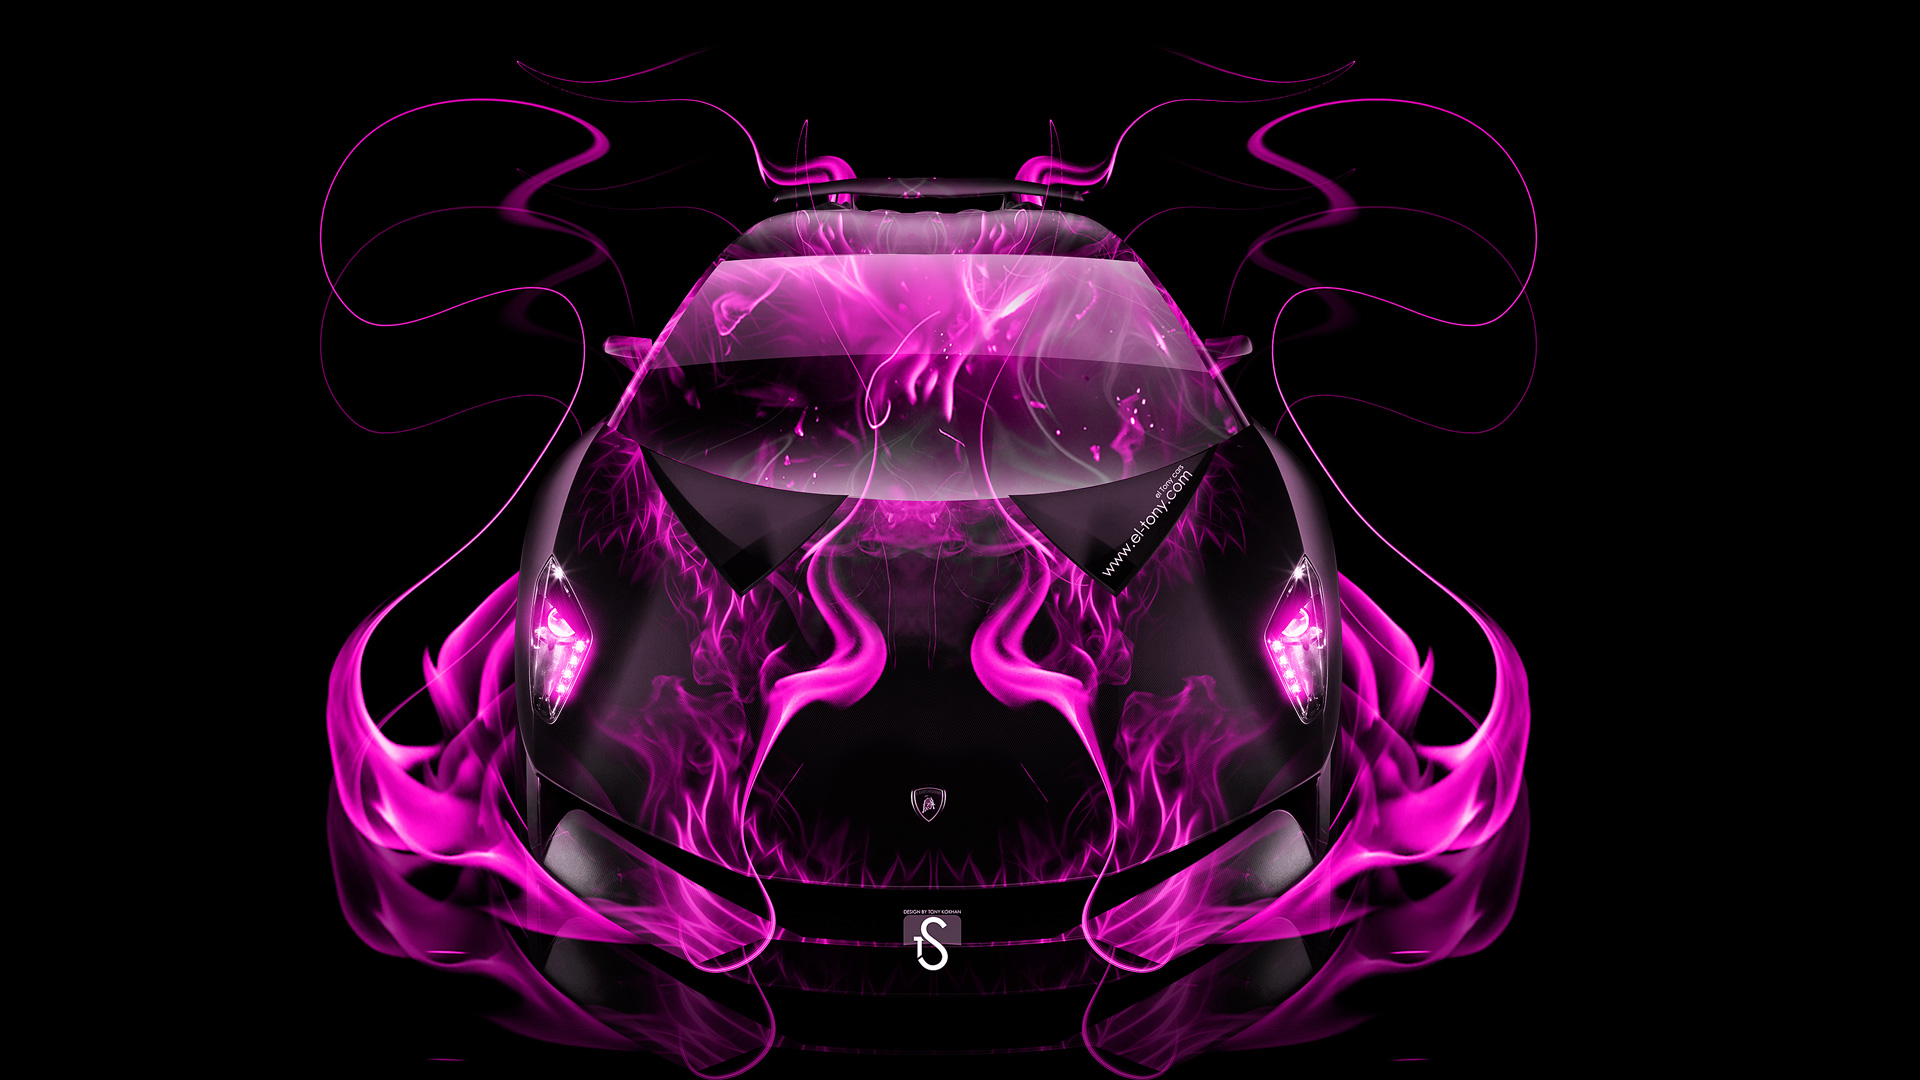 ... Lamborghini Sesto Elemento Pink Fire Abstract Car 2014